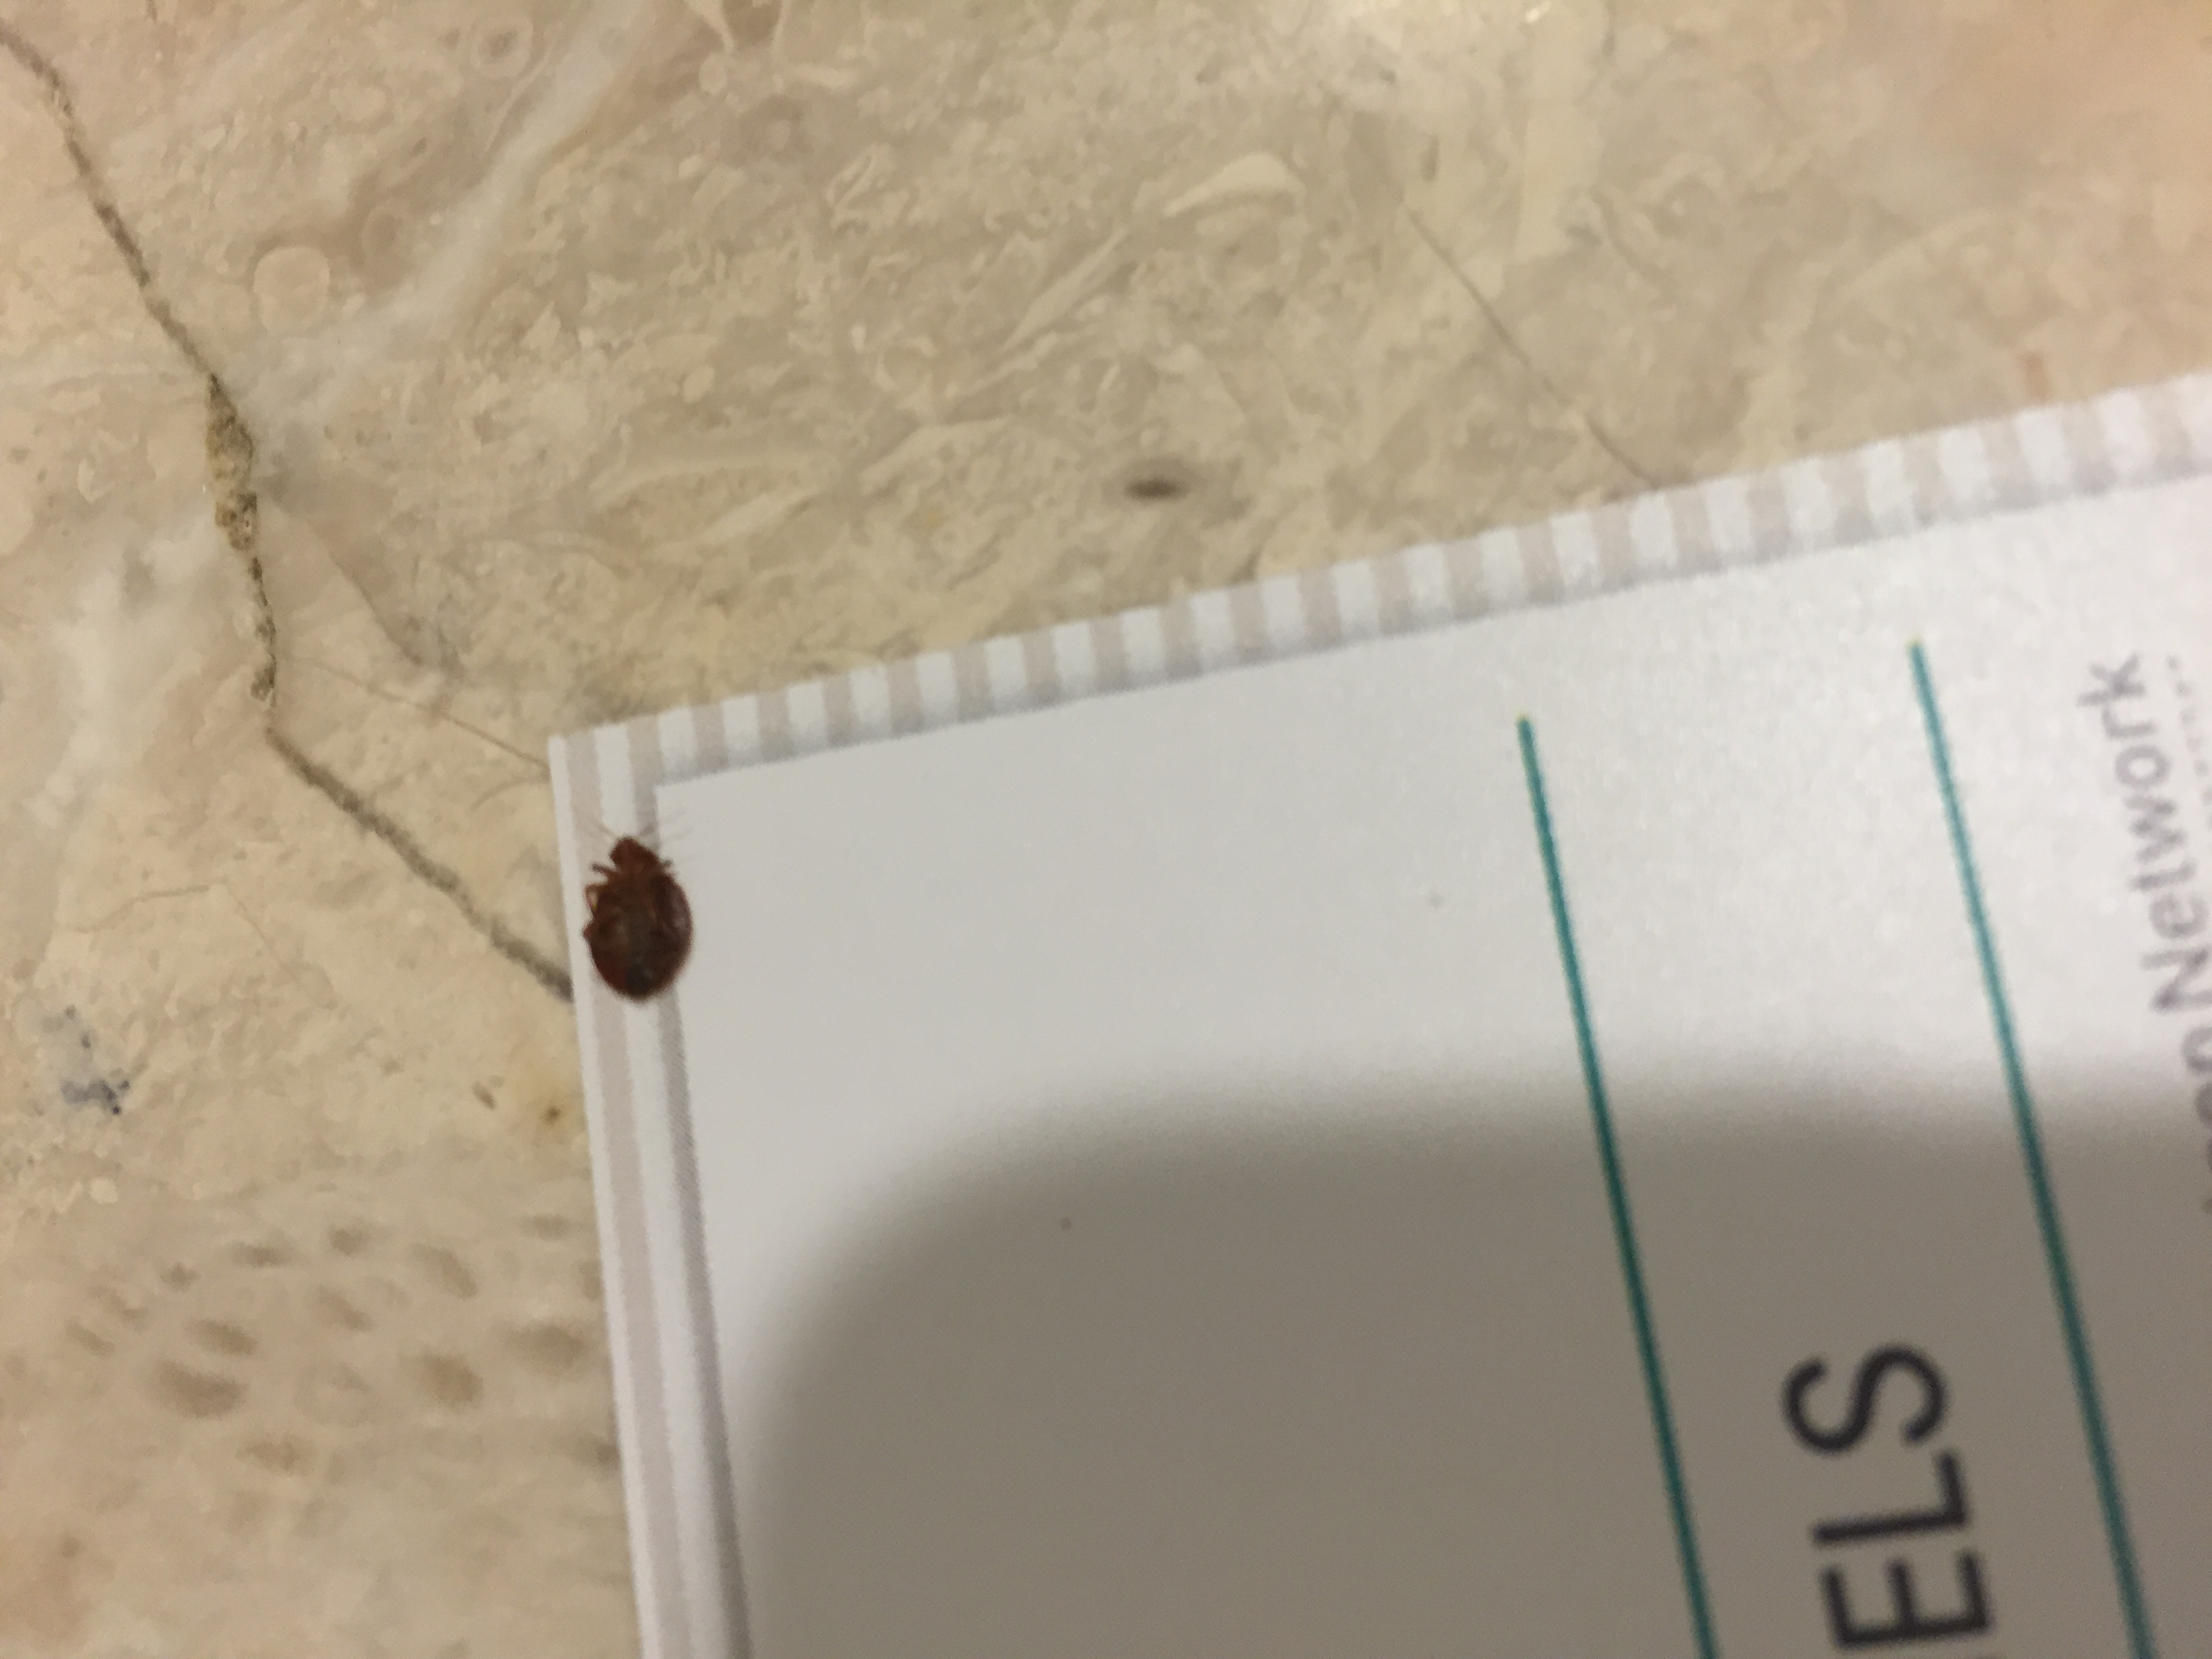 Embassy Suites Indianapolis North Bed Bugs